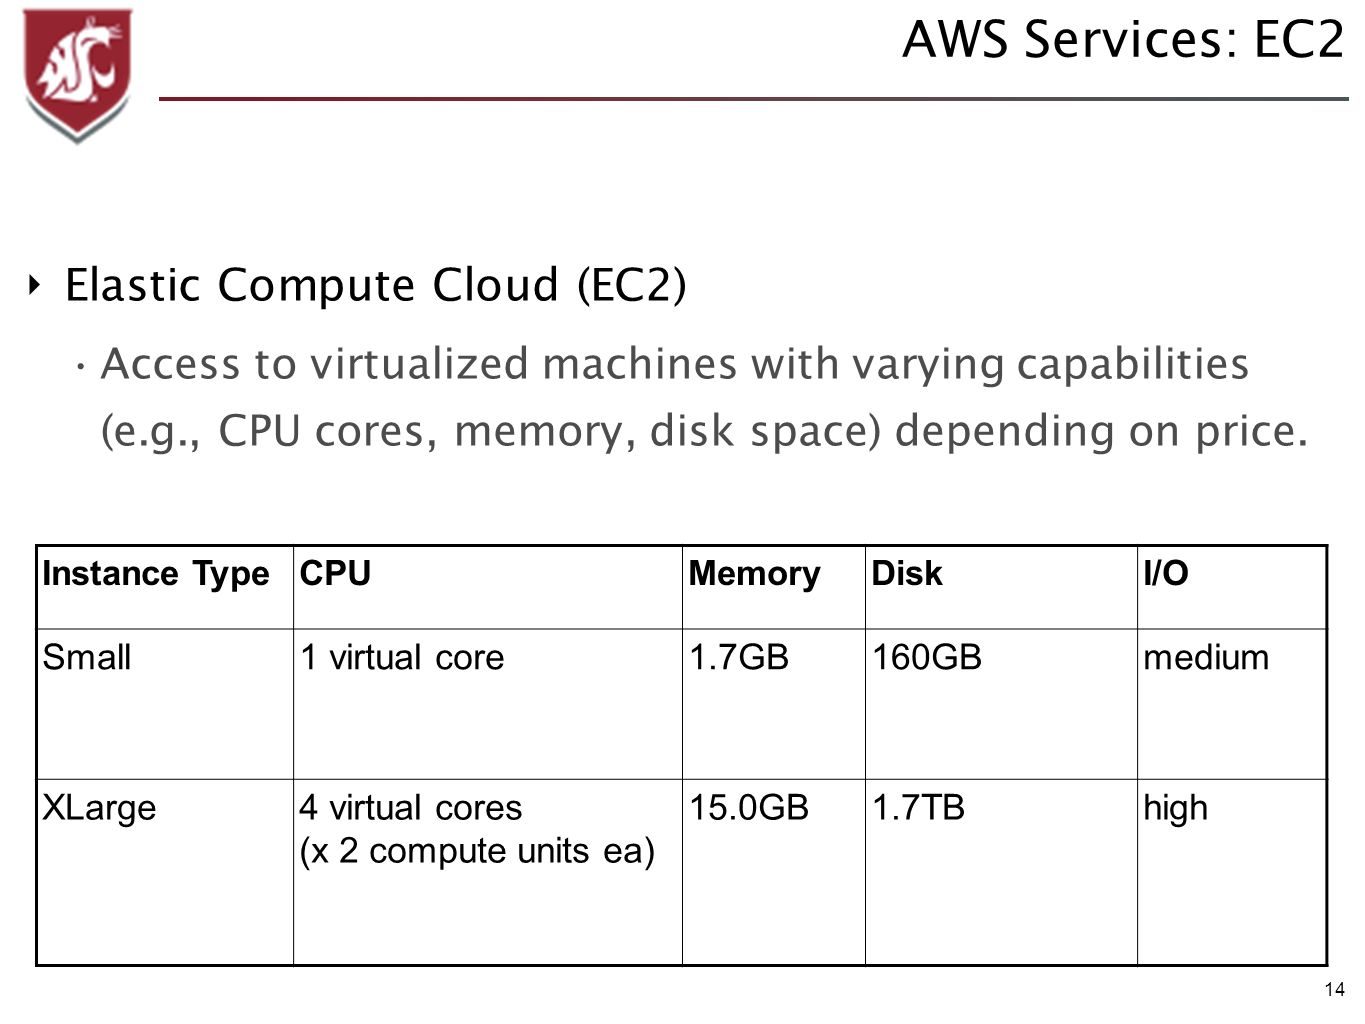 14 AWS Services: EC2 Elastic Compute Cloud (EC2) Access to virtualized machines with varying capabilities (e.g., CPU cores, memory, disk space) depend